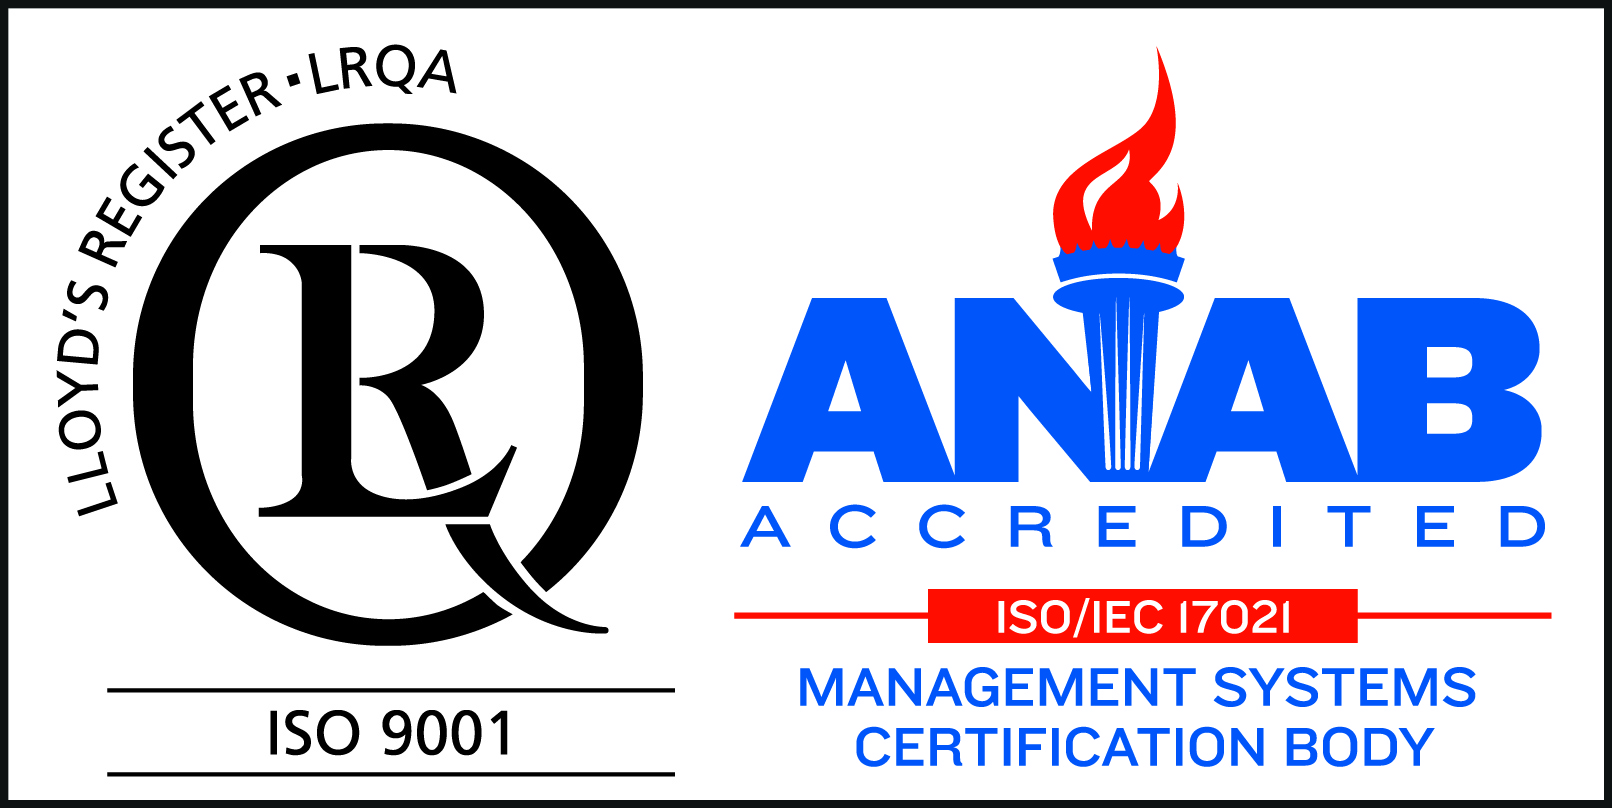 Martin Lubricants Martin Lubricants Receives Iso 90012008 Certification